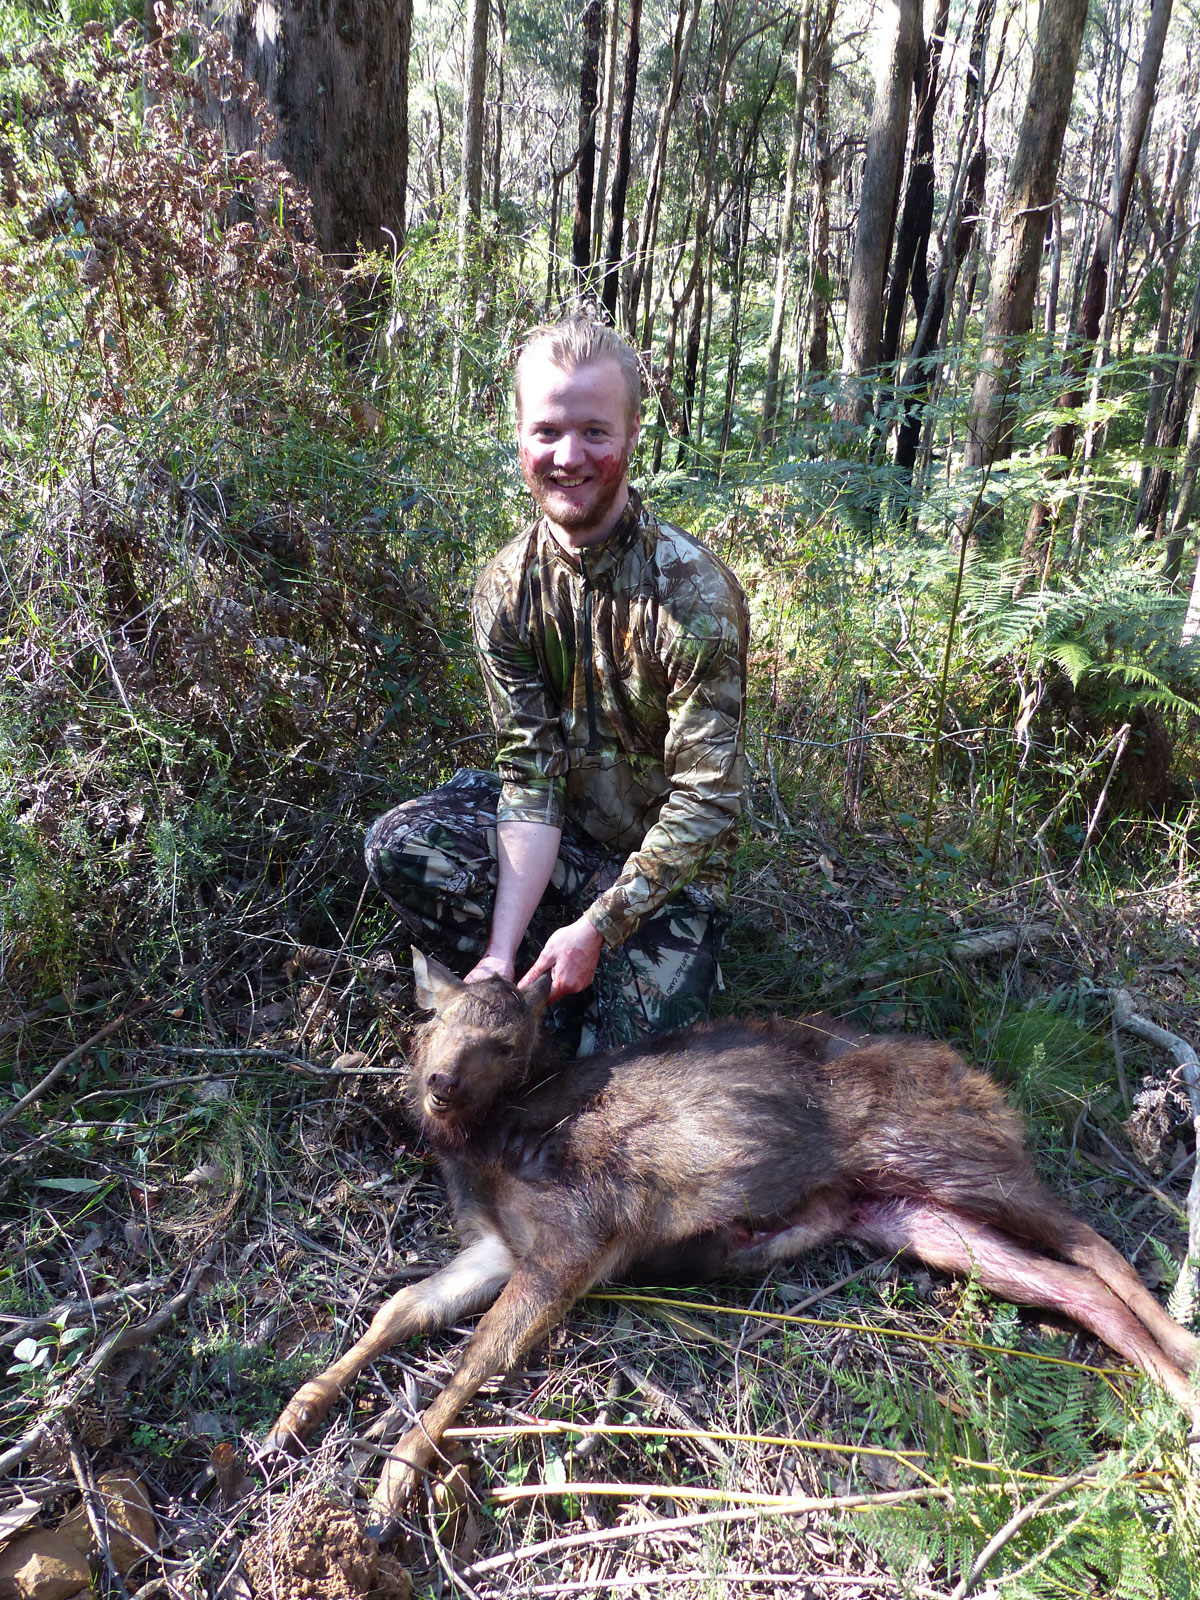 Taygen's first sambar deer